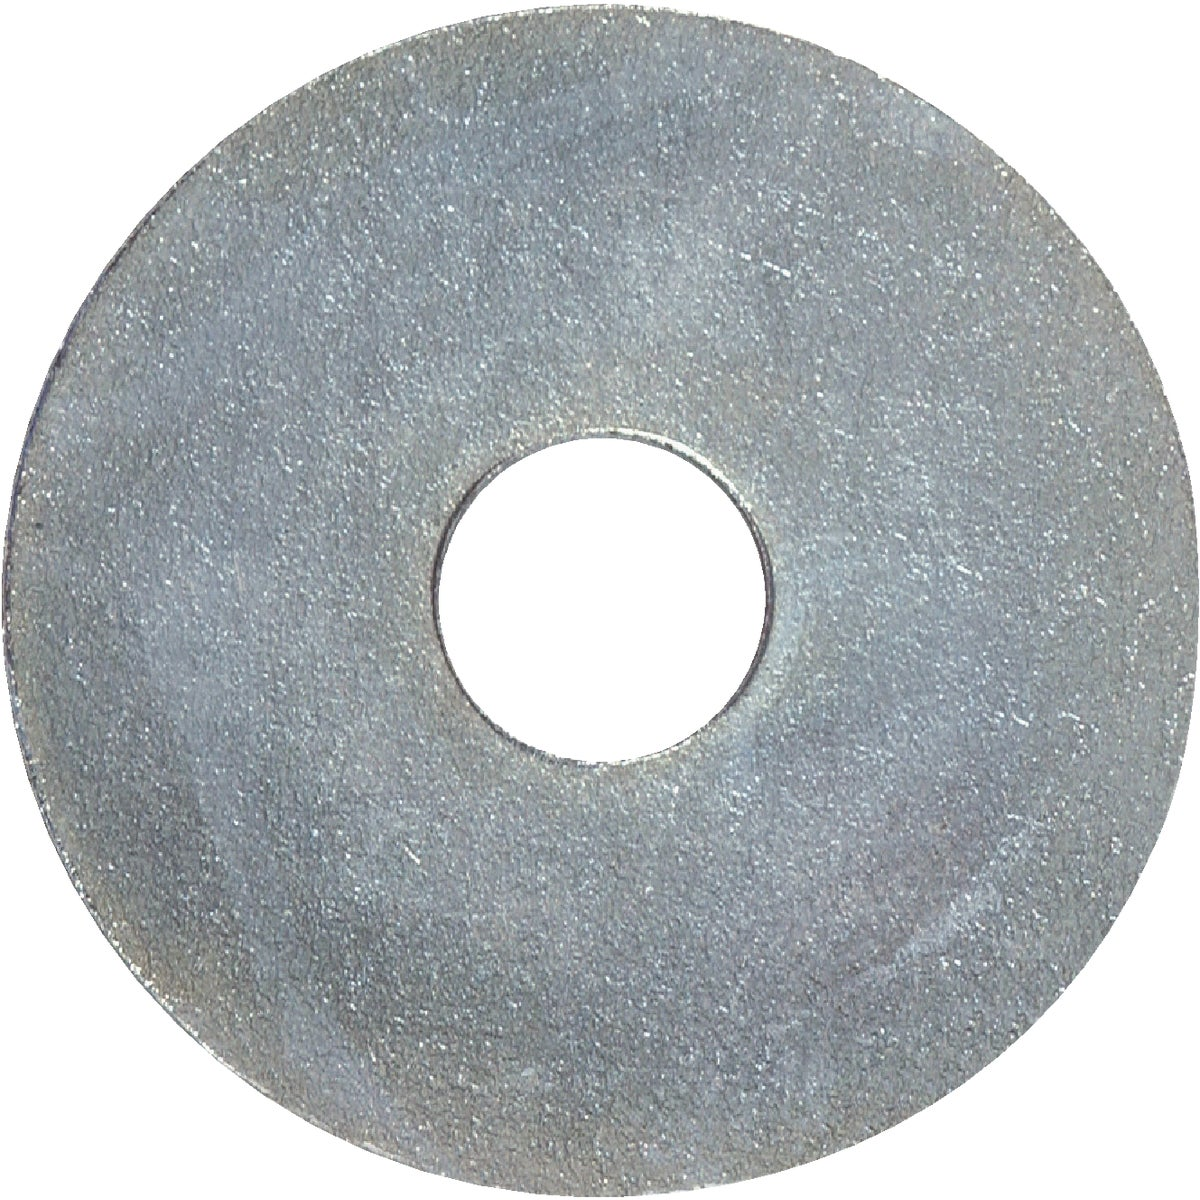 1/8X3/4 FENDER WASHER - 290001 by Hillman Fastener